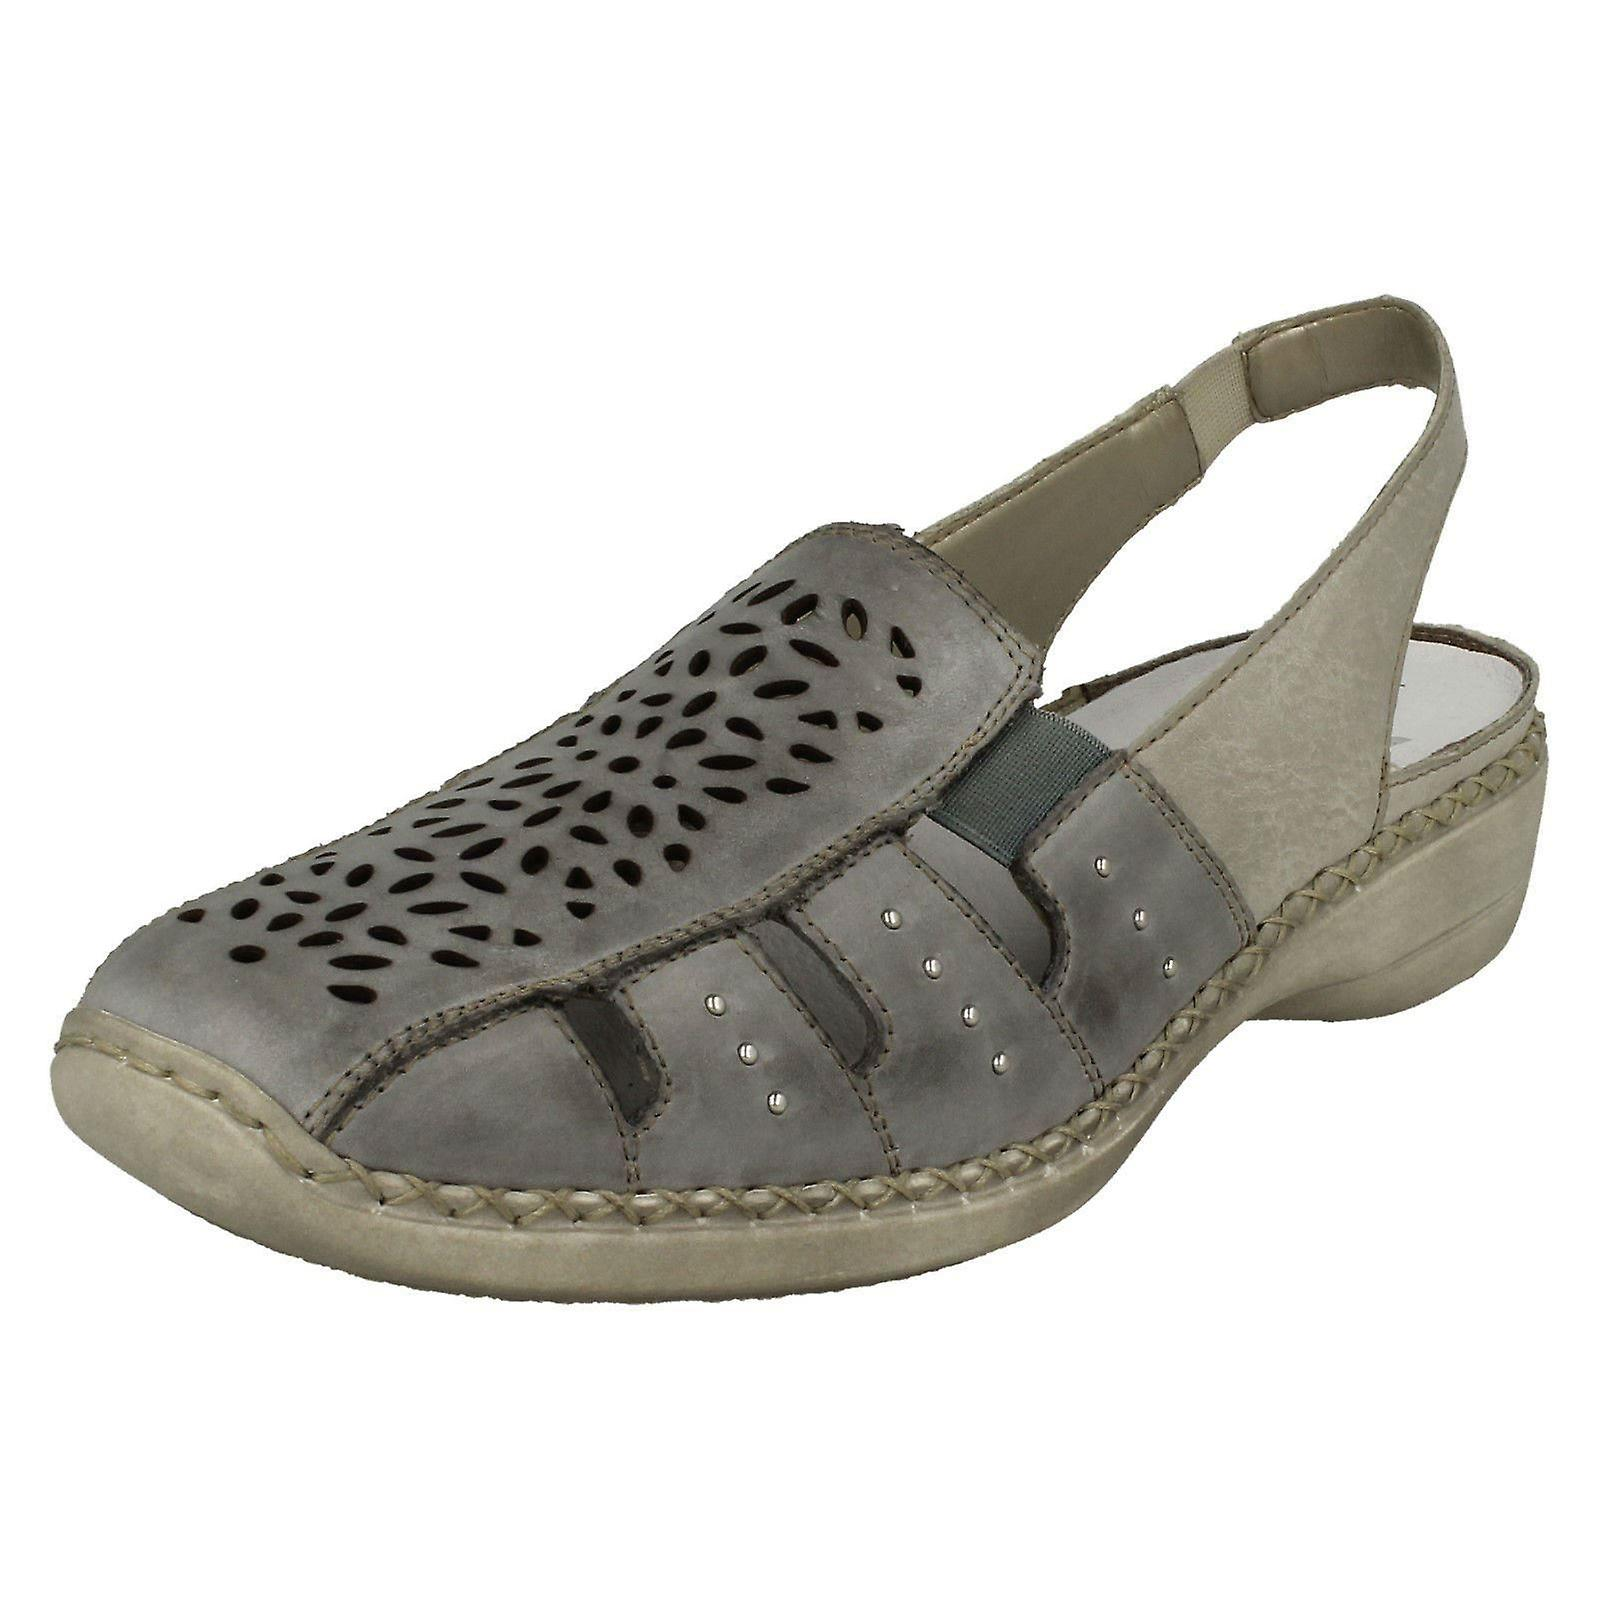 Size Shoes Combination Size Back 10 EU Rieker UK 6 Blue Leather Sling 8 Size US Ladies Casual 39 41390 H6SqIn